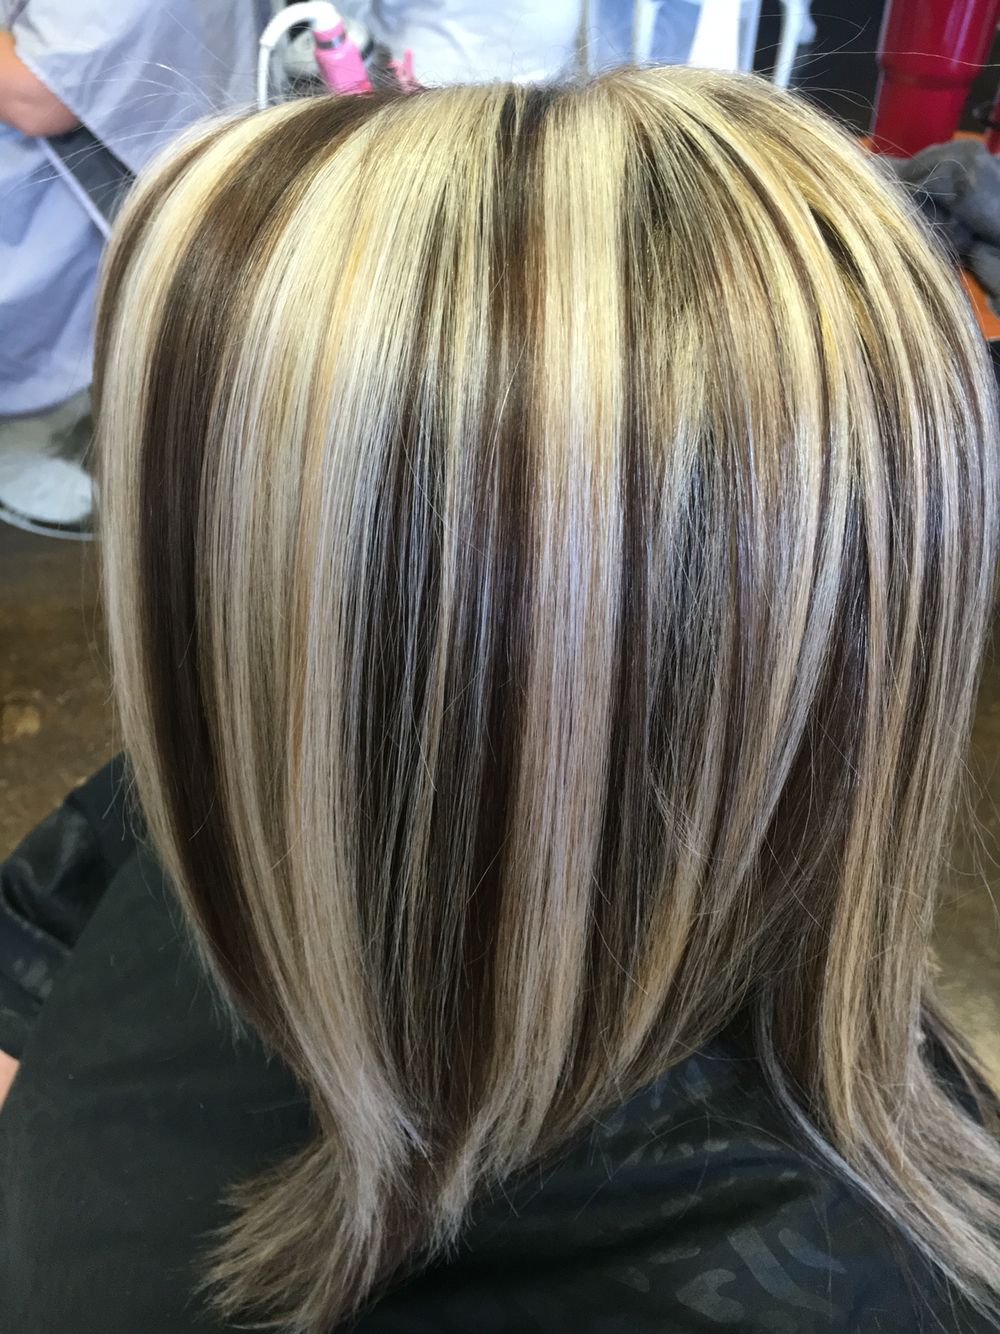 Heavy Platinum Blonde Highlights And A Golden Violet Base Blonde Highlights On Dark Hair Short Brown Hair With Blonde Highlights Blonde Highlights On Dark Hair